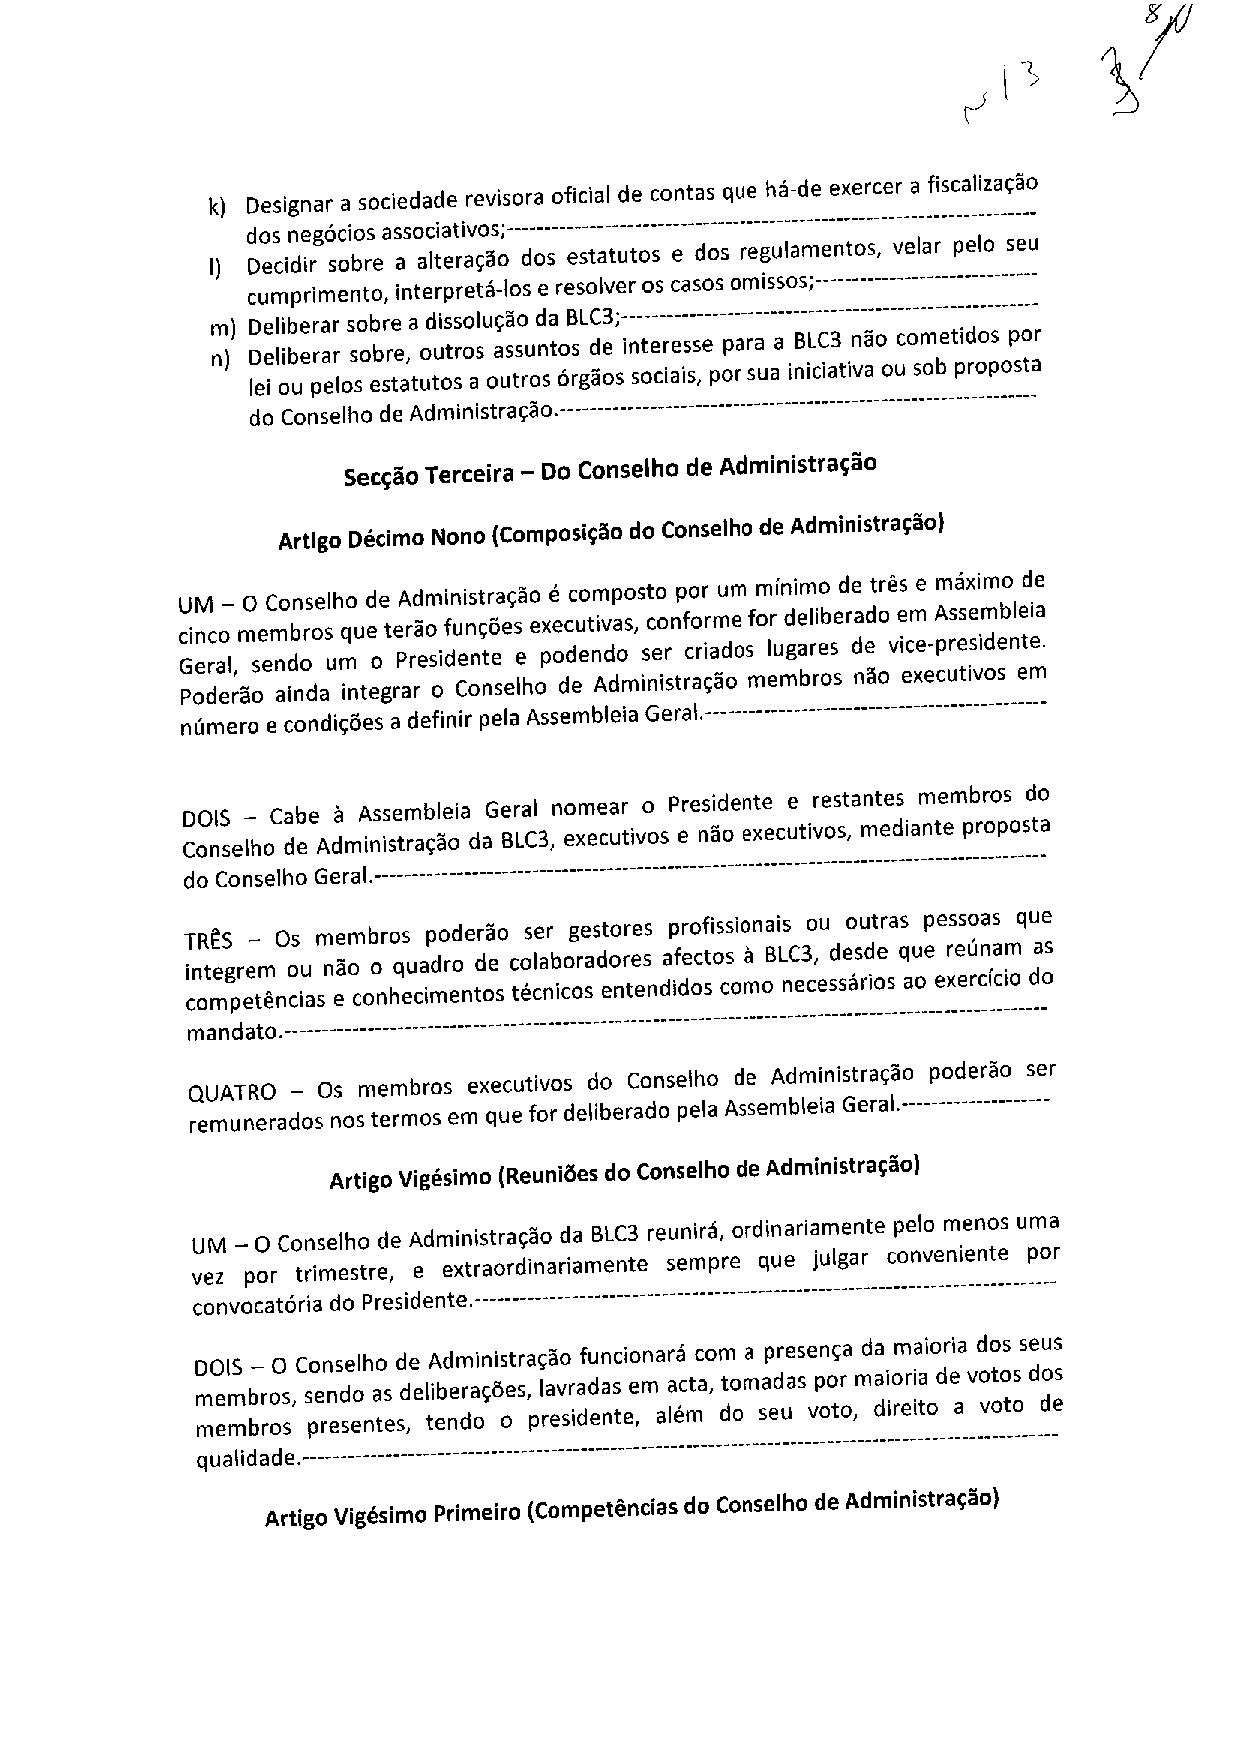 509402267_Associacao_BLC_3a_alteracao (1)-page-014